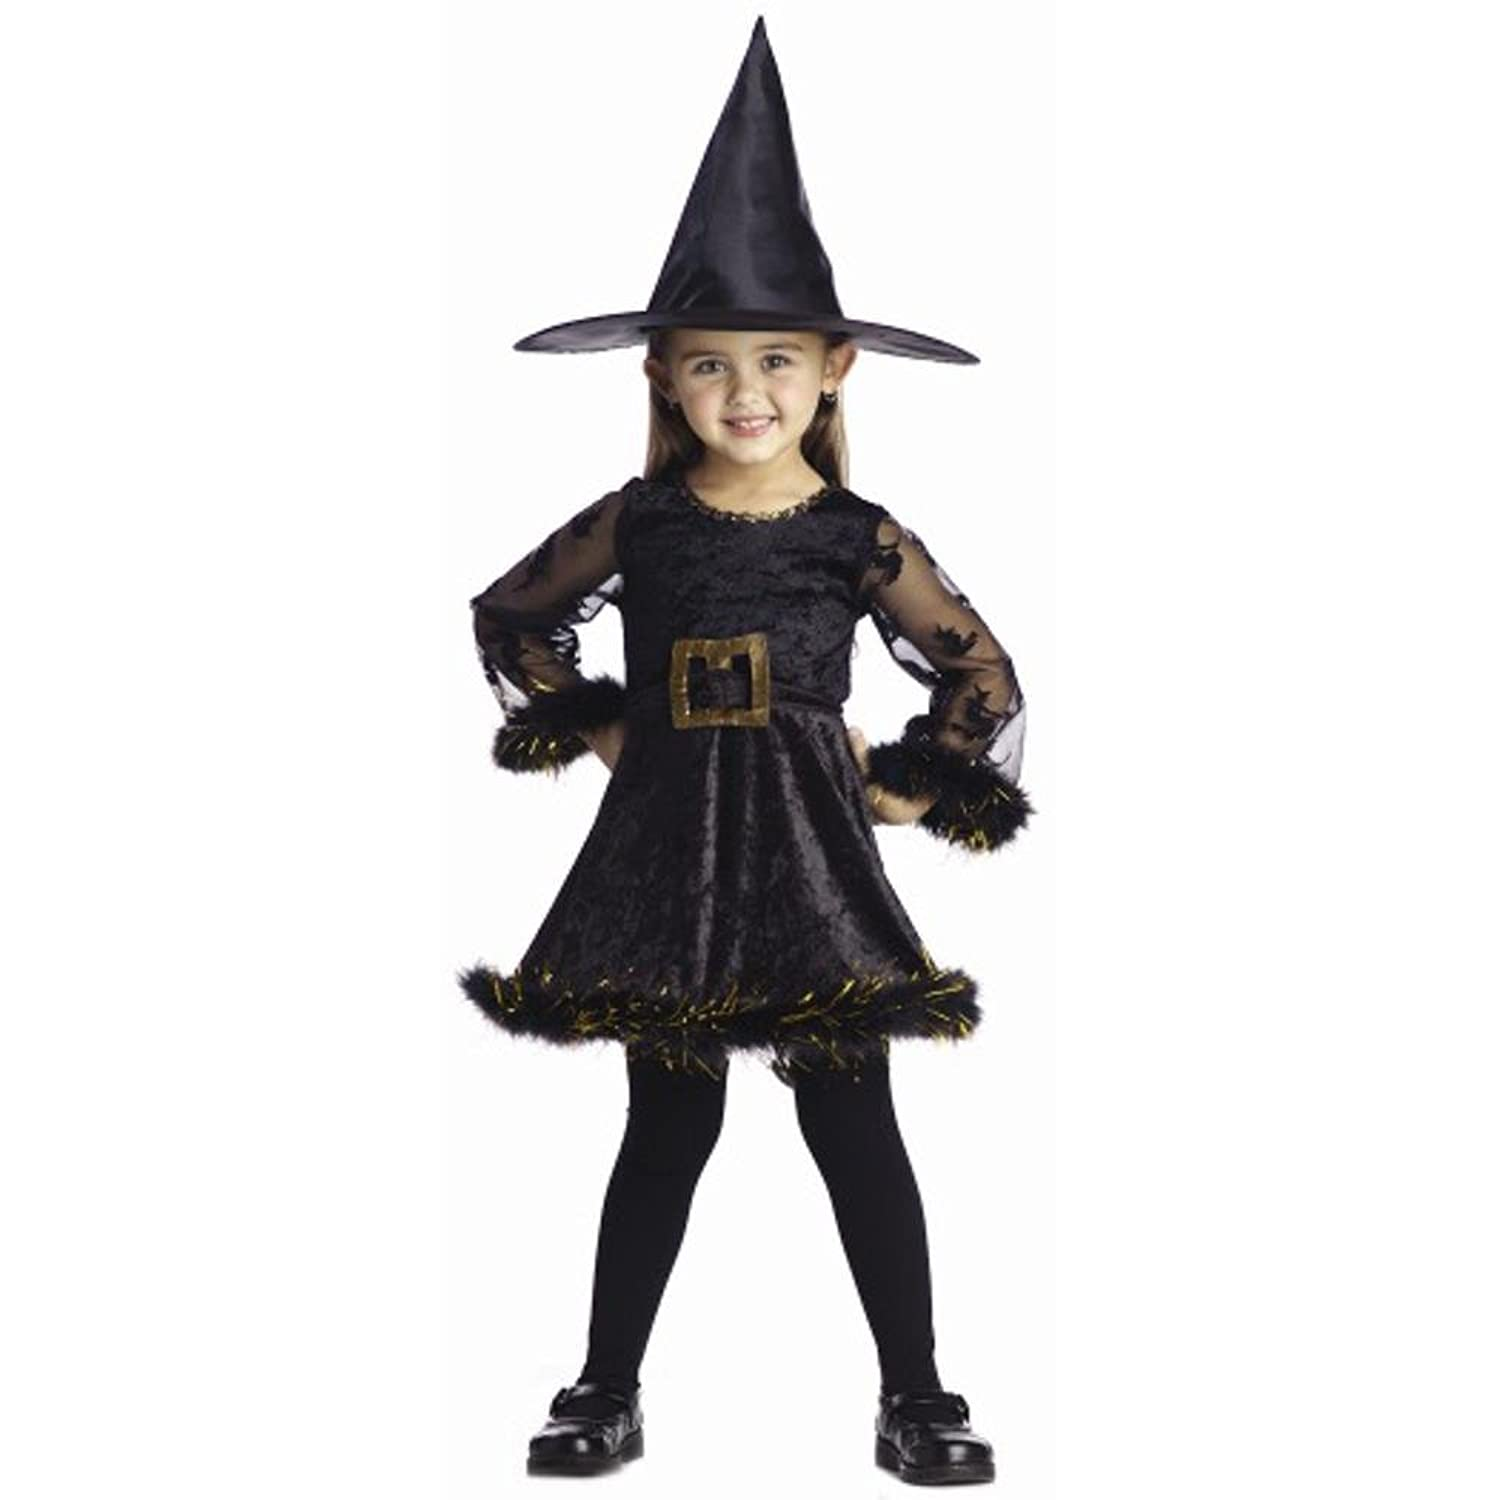 Amazon.com: Child's Cute Toddler Adorable Witch Halloween Costume ...